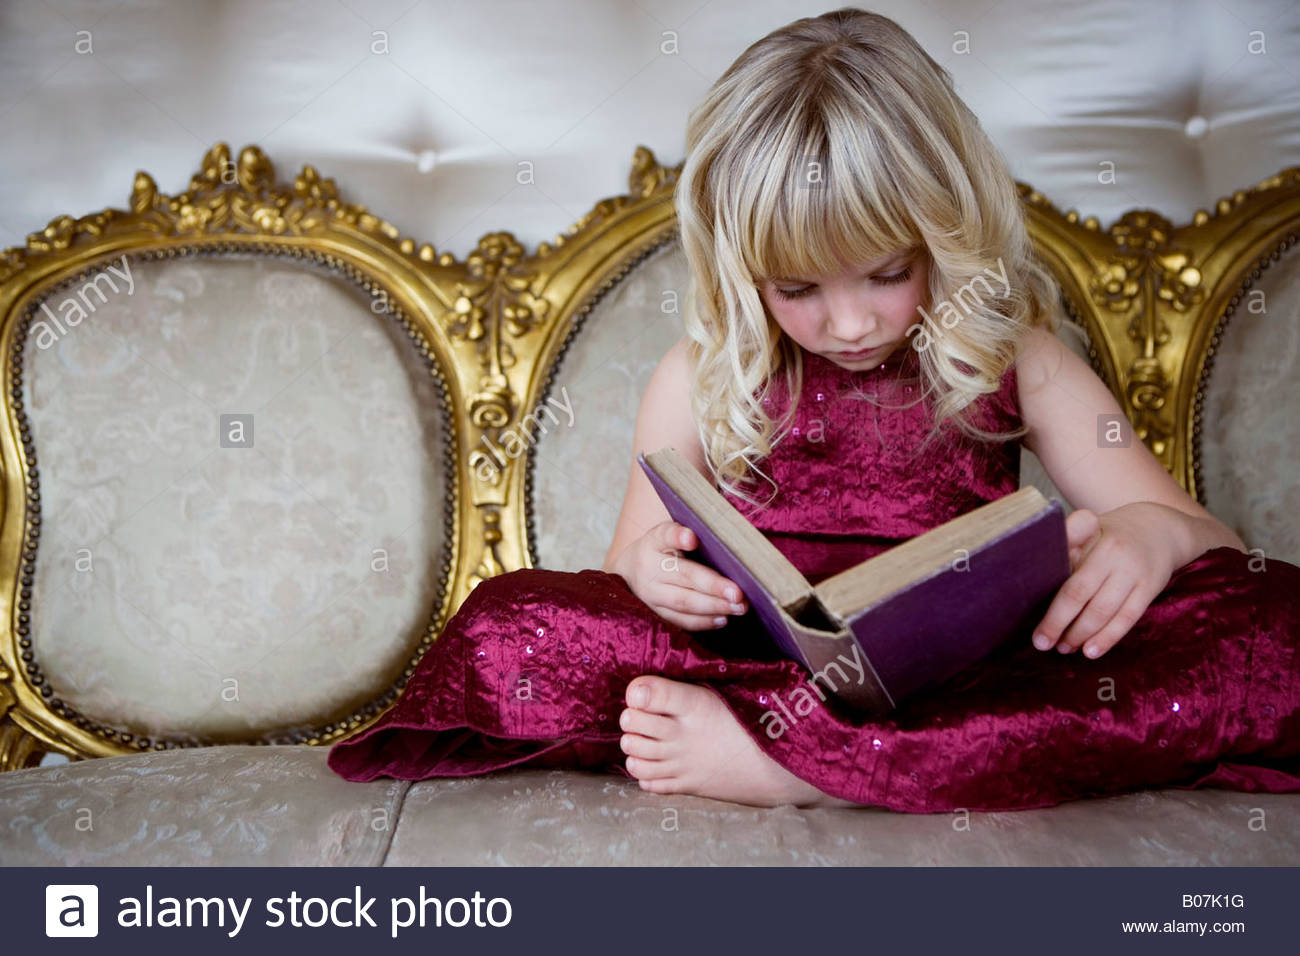 Little girl in a party dress reading a book - Stock Image